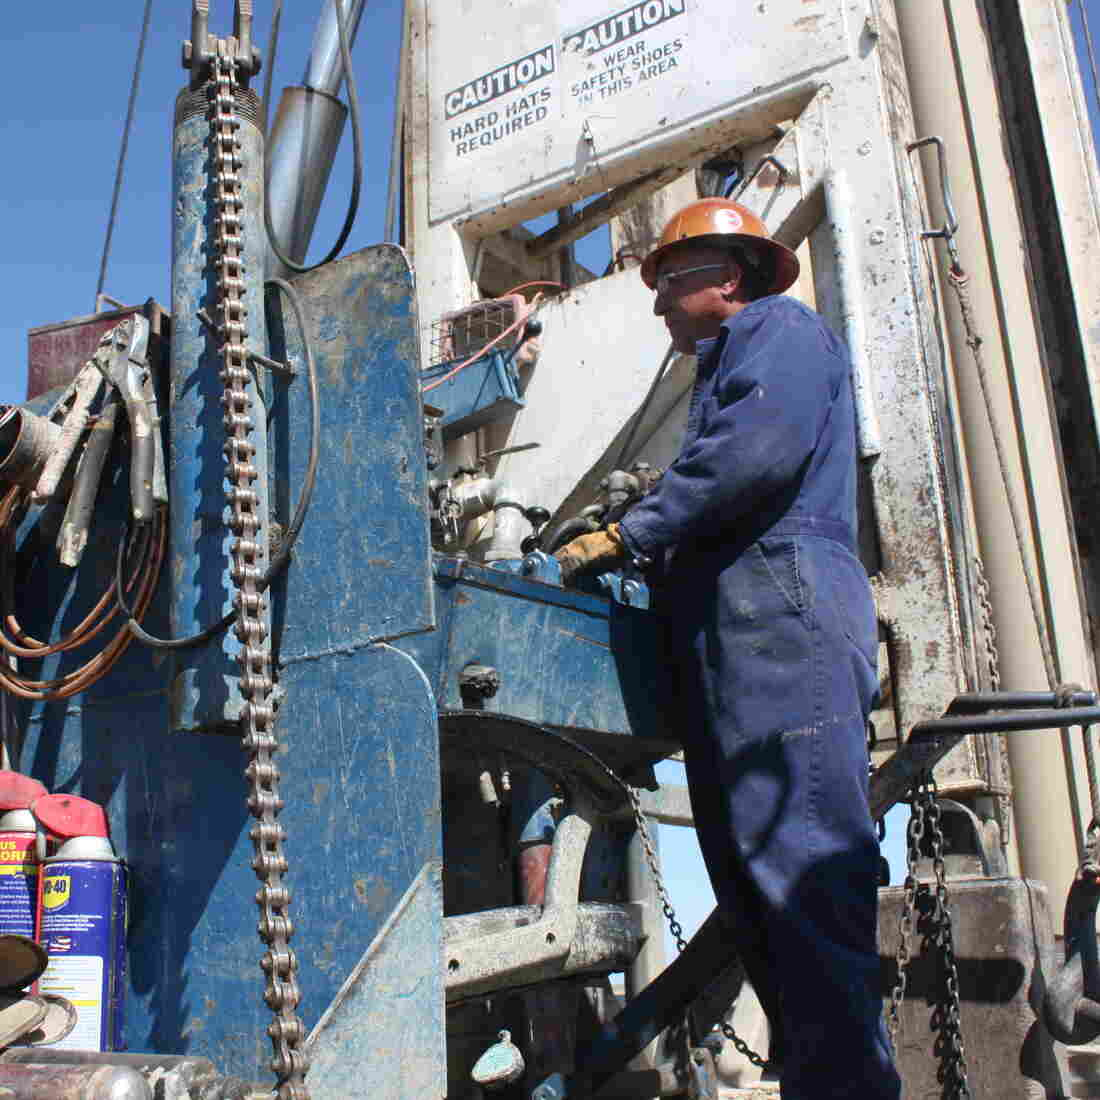 Juan de La Cruz operates a drilling rig that is probing for groundwater 2,500 feet beneath Fresno County.